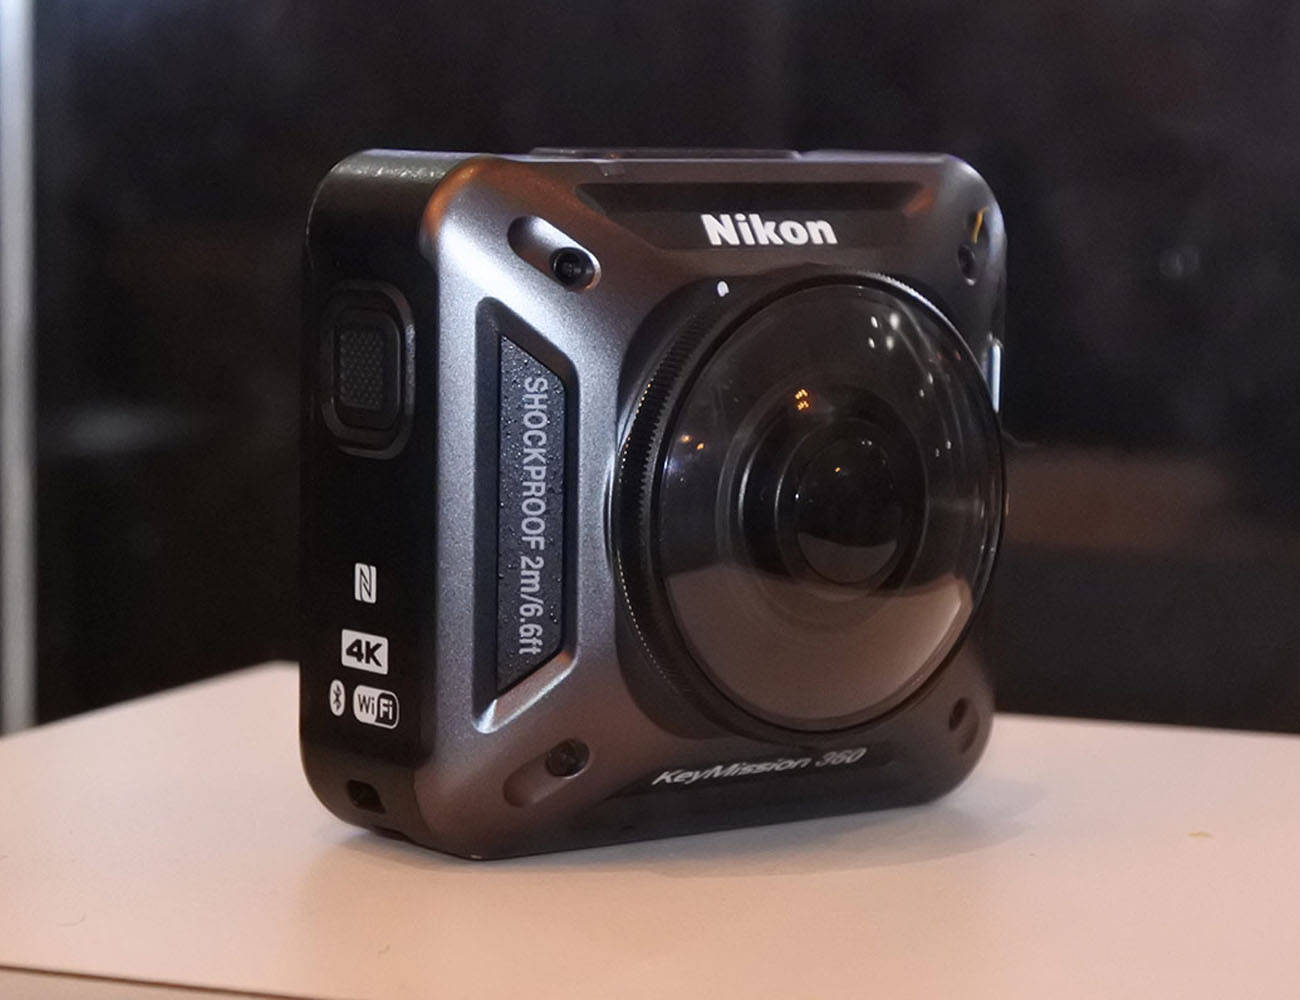 Nikon Key Mission 360 Action Camera